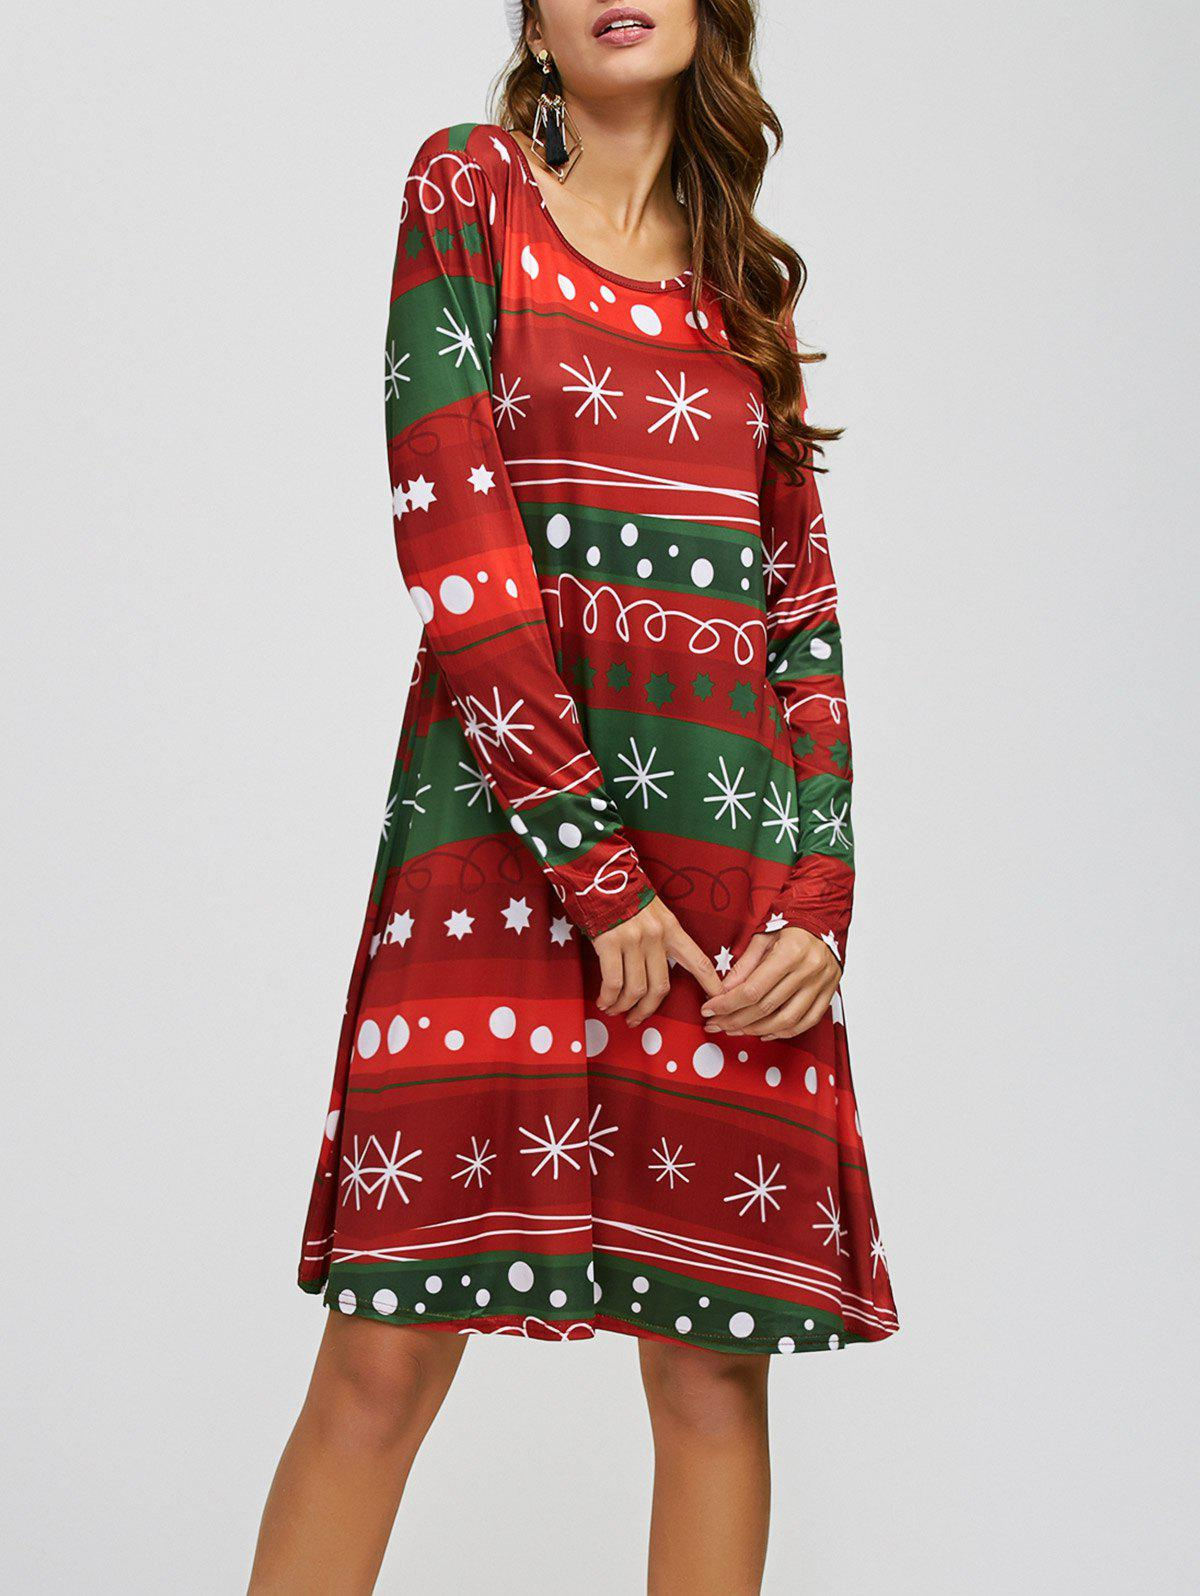 Snowflake Print Long Sleeves Xmas Swing DressWOMEN<br><br>Size: ONE SIZE; Color: RED AND GREEN; Style: Cute; Material: Polyester,Spandex; Silhouette: A-Line; Dresses Length: Knee-Length; Neckline: Jewel Neck; Sleeve Length: Long Sleeves; Pattern Type: Print; With Belt: No; Season: Fall,Spring; Weight: 0.320kg; Package Contents: 1 x Dress;